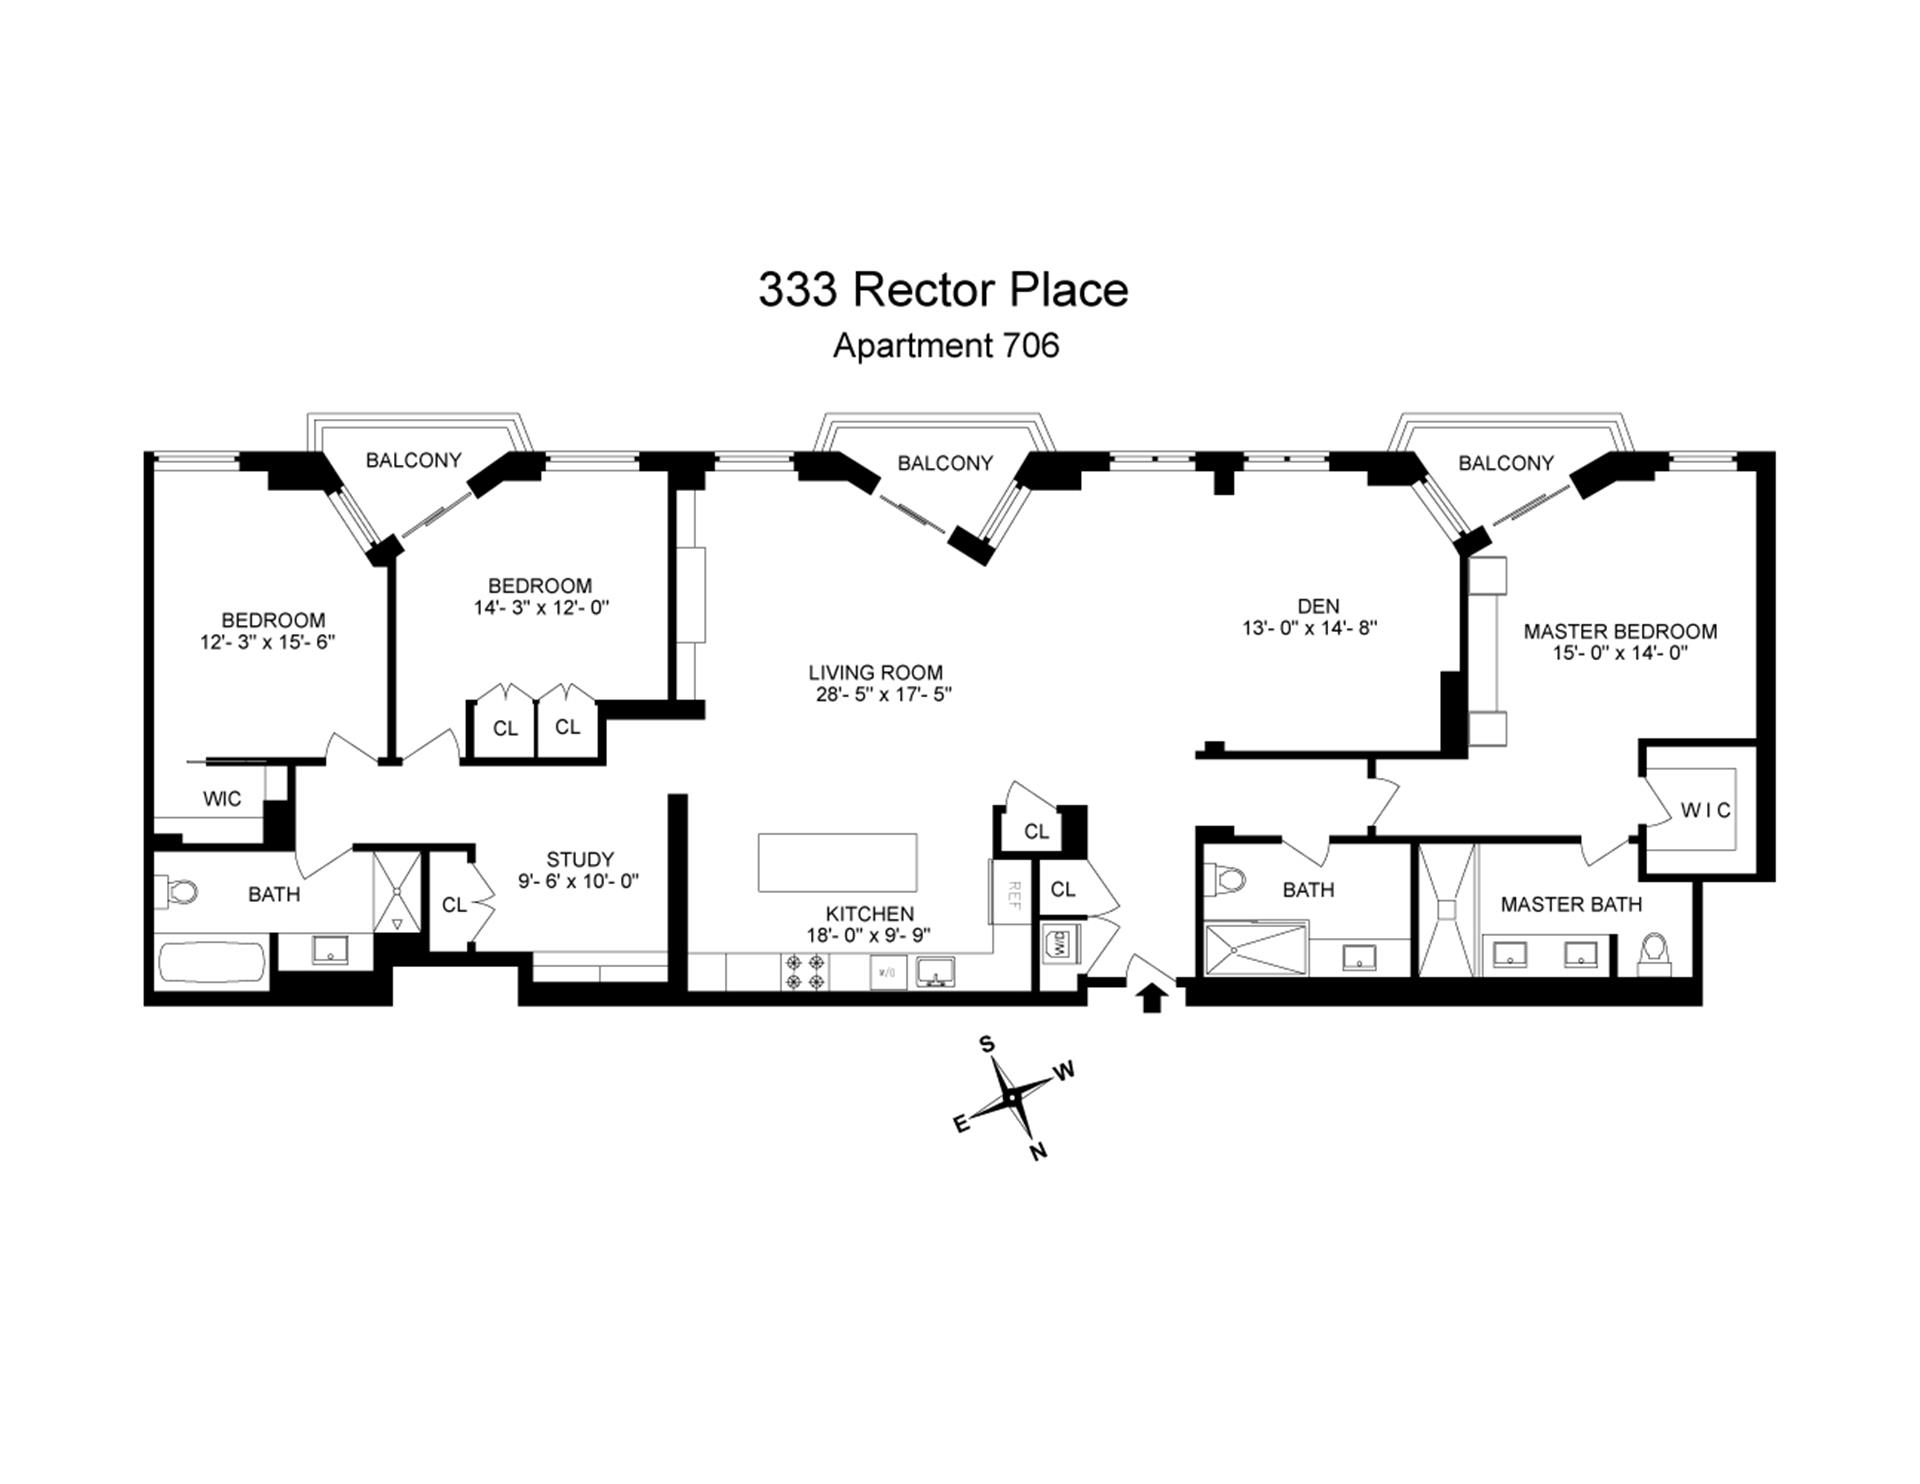 Floor plan of One Rector Park, 333 Rector Pl, 706 - Battery Park City, New York